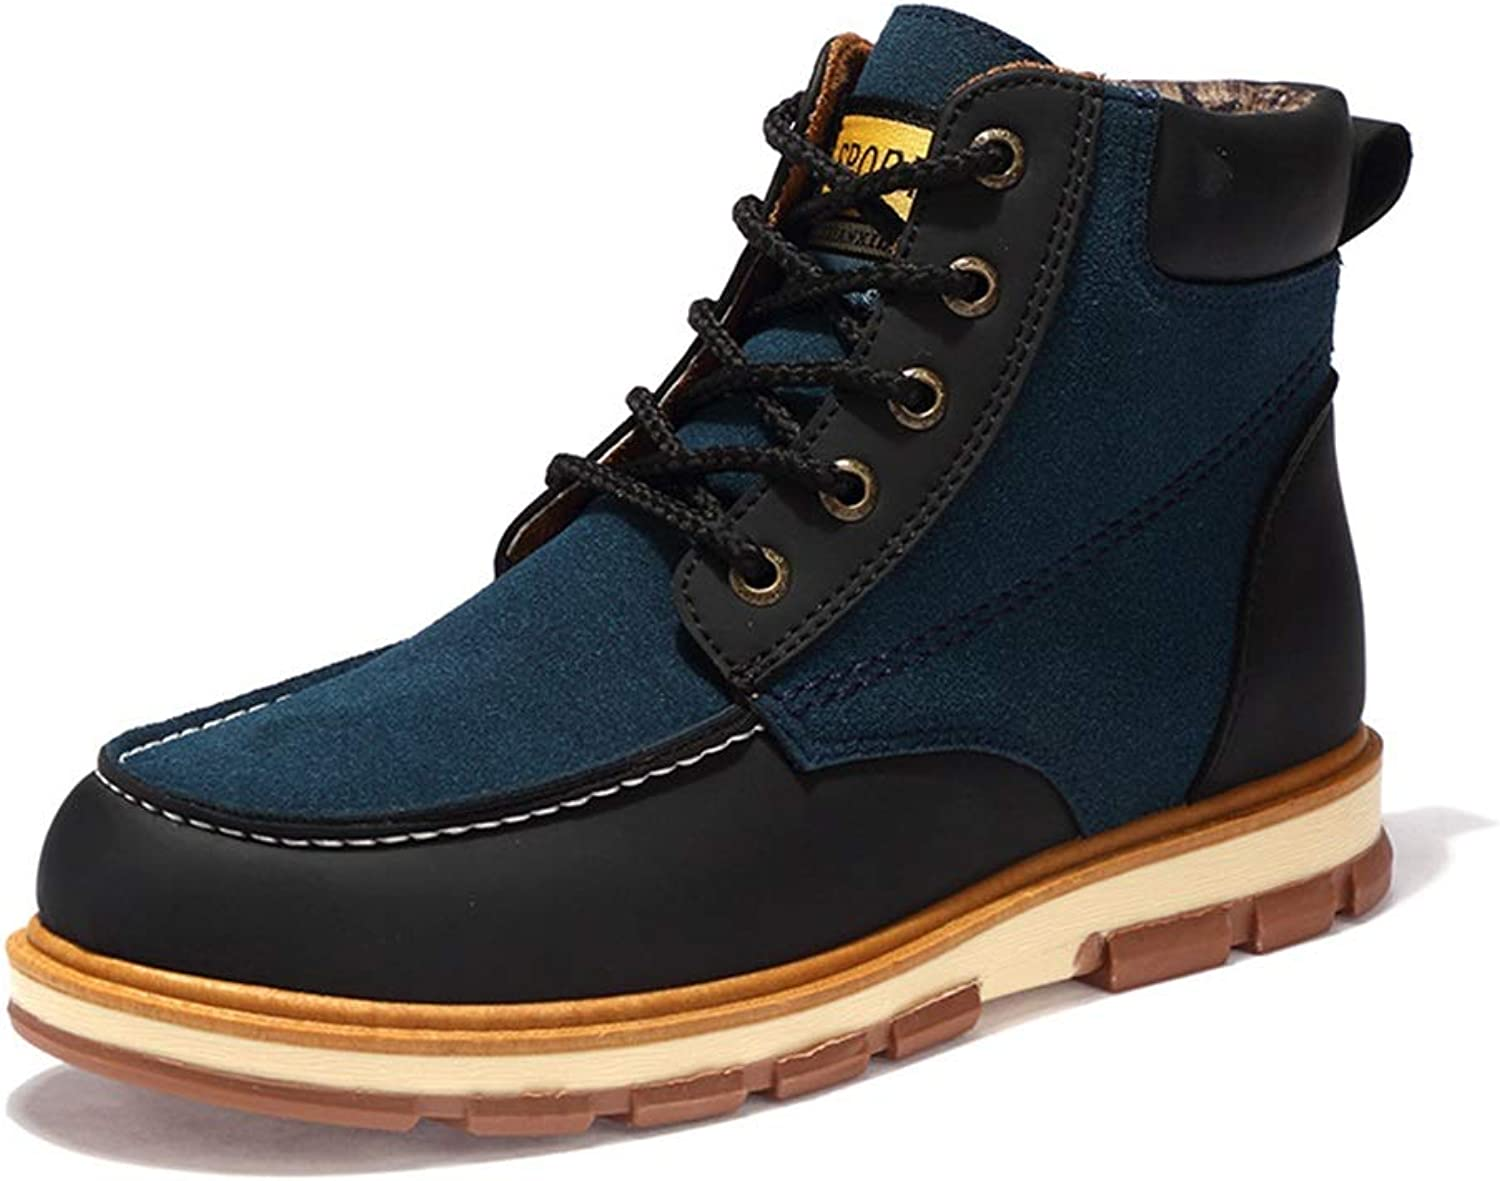 ZHRUI Mens Lace up Ankle Boots Casual Fashion Winter Non Slip Soft Sole Boots (color   bluee, Size   UK 7)